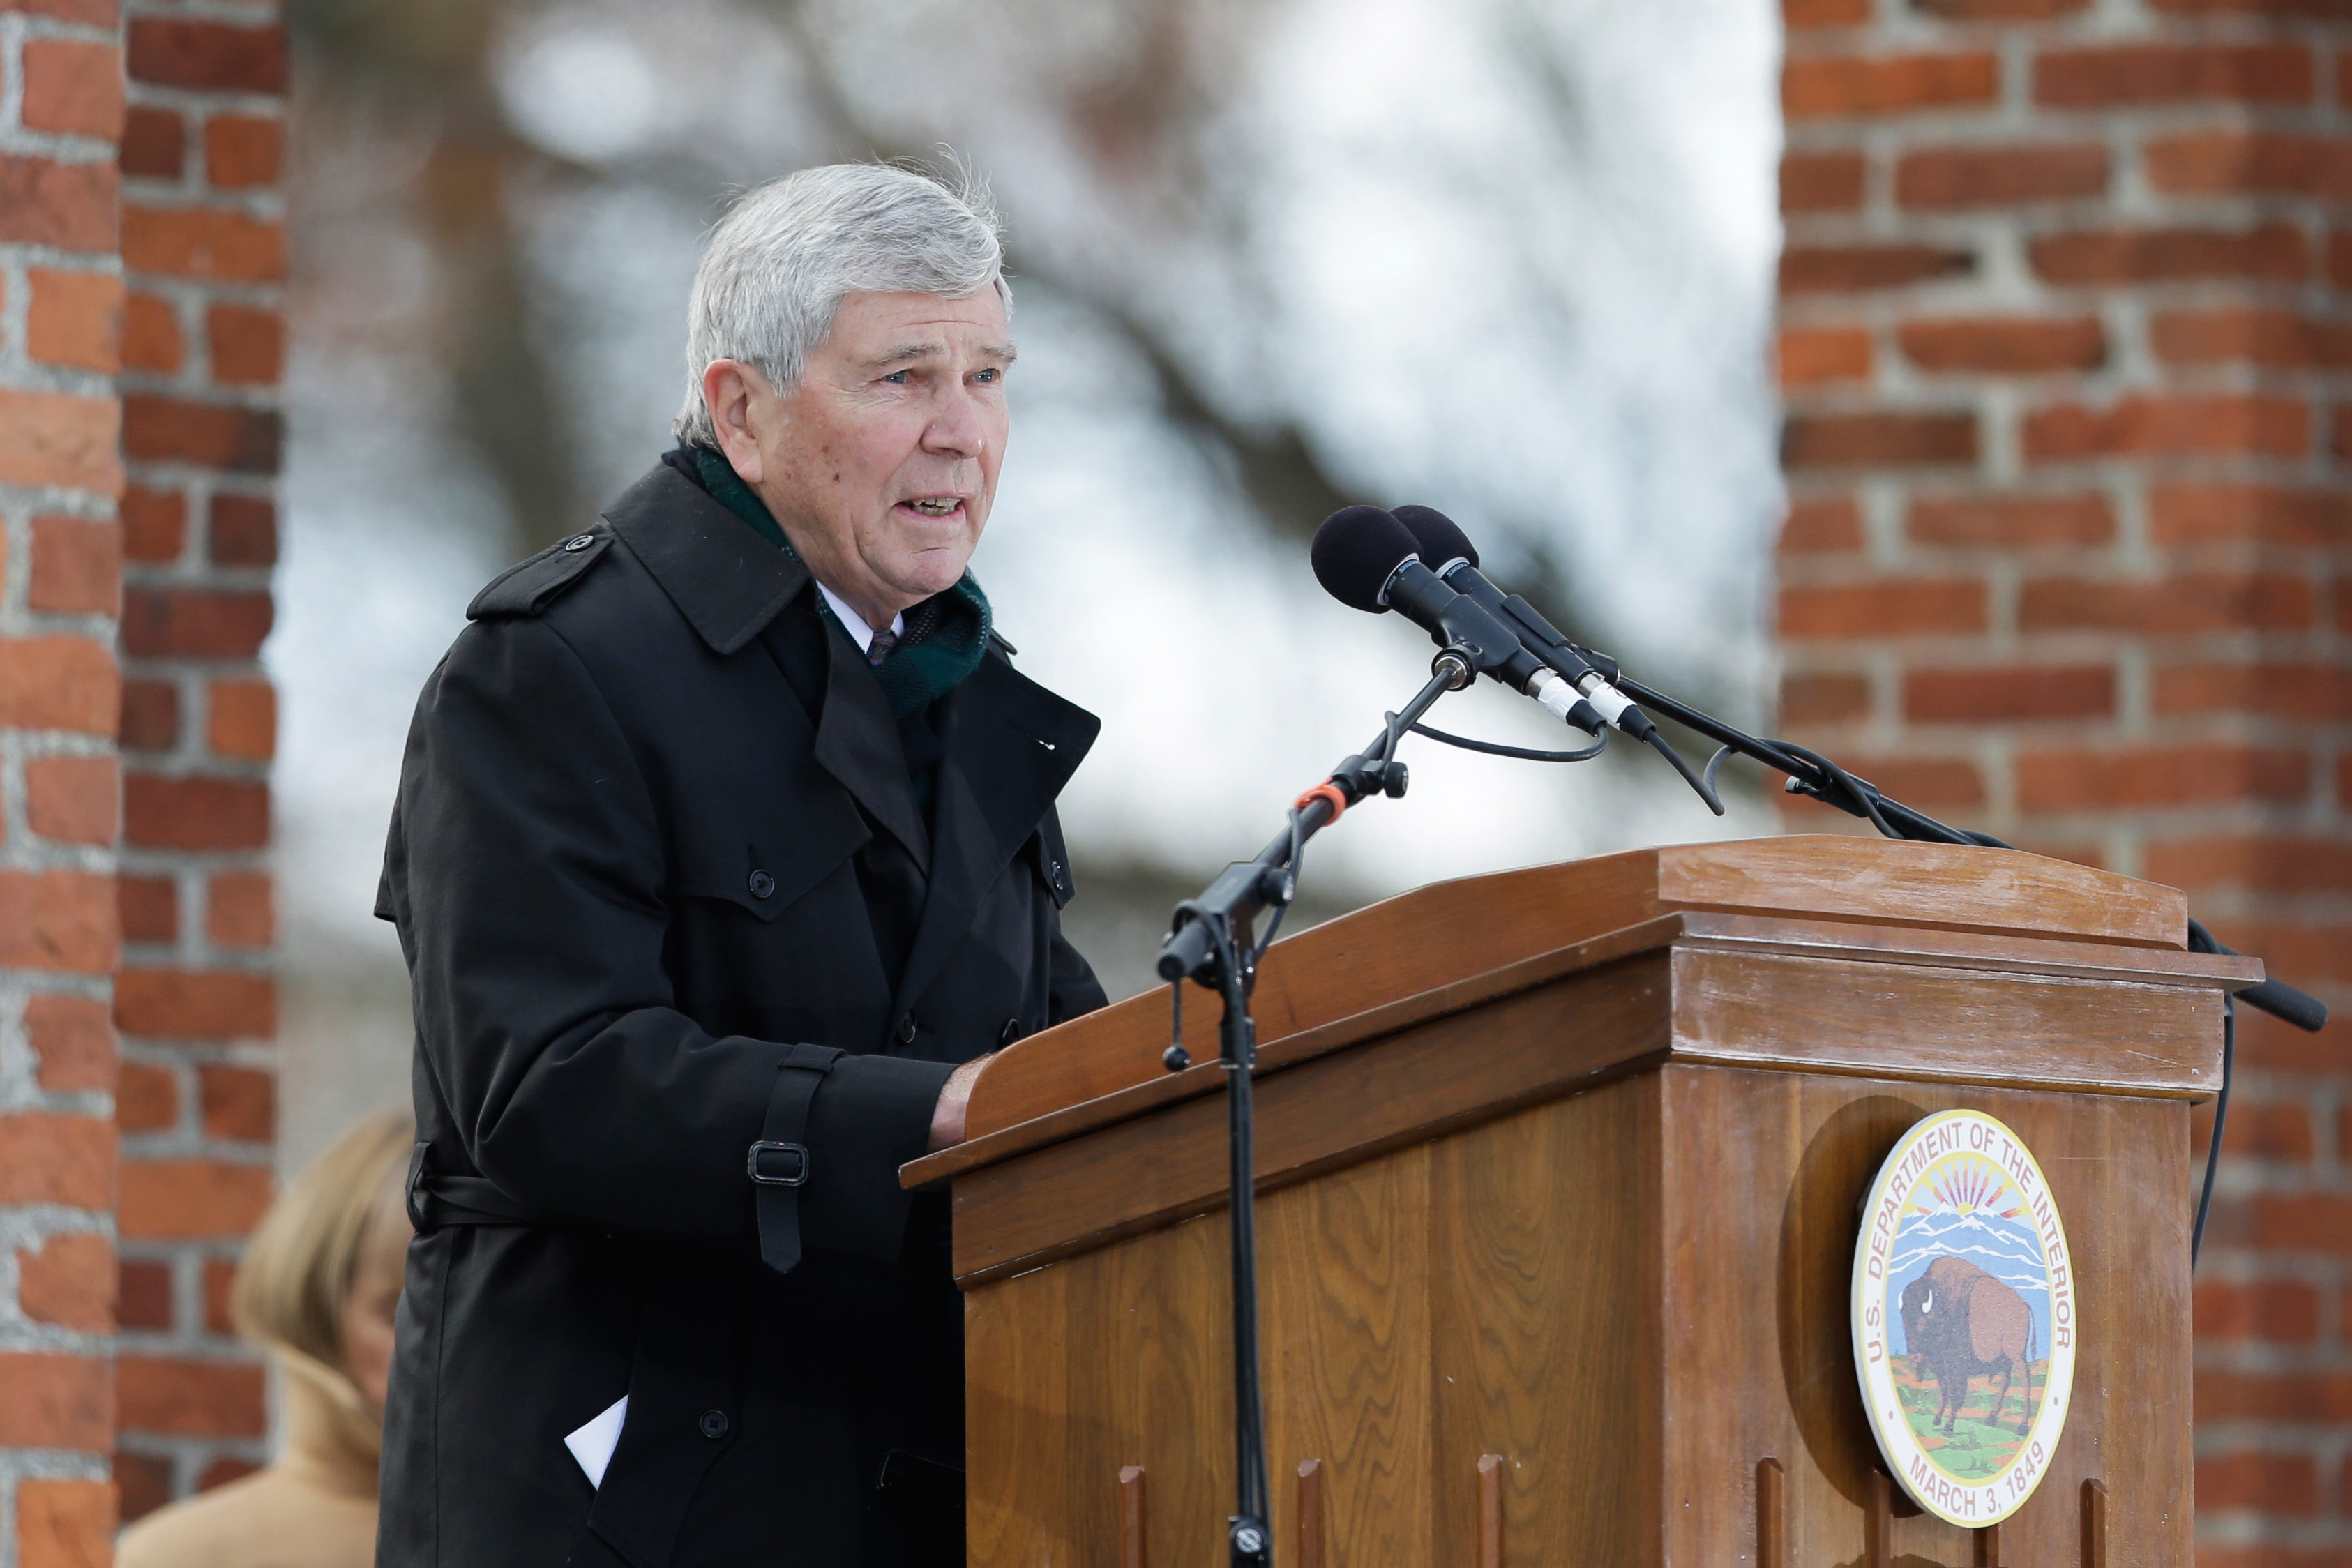 Historian James McPherson speaks during a ceremony commemorating the 150th anniversary of the dedication of the Soldiers National Cemetery and President Abraham Lincoln